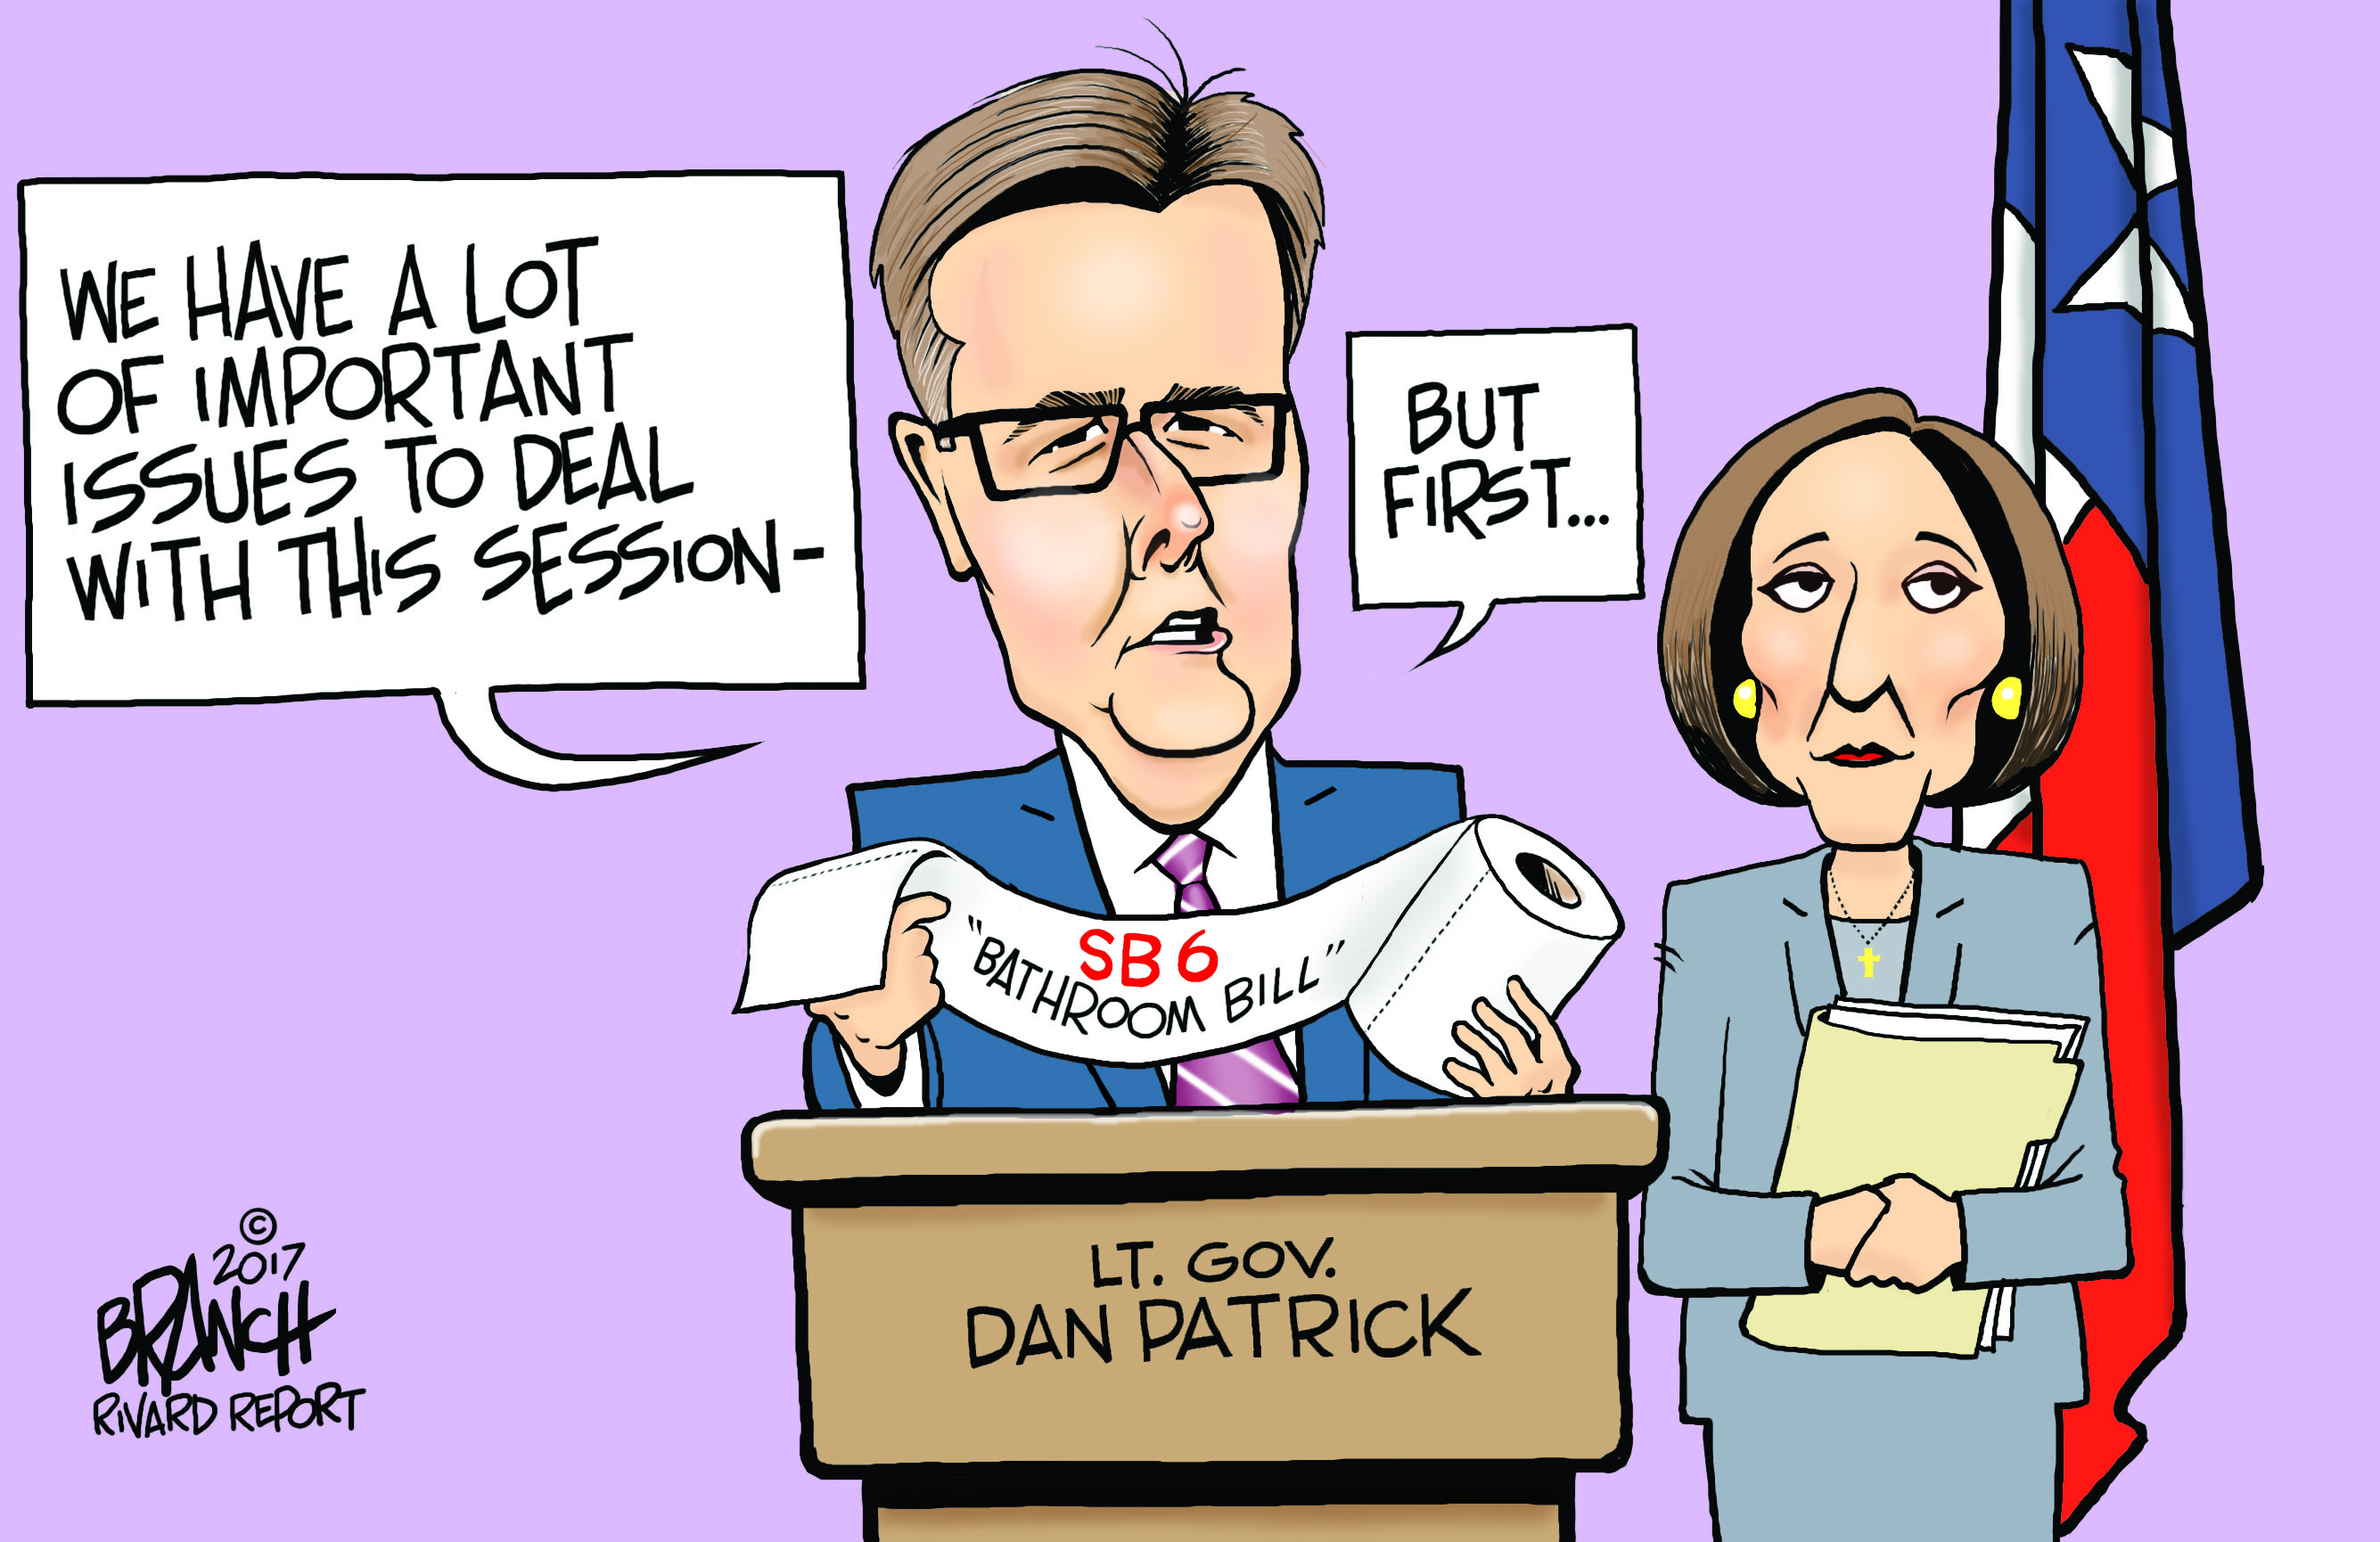 010616 RR dan patrick bathroom bill HQ web